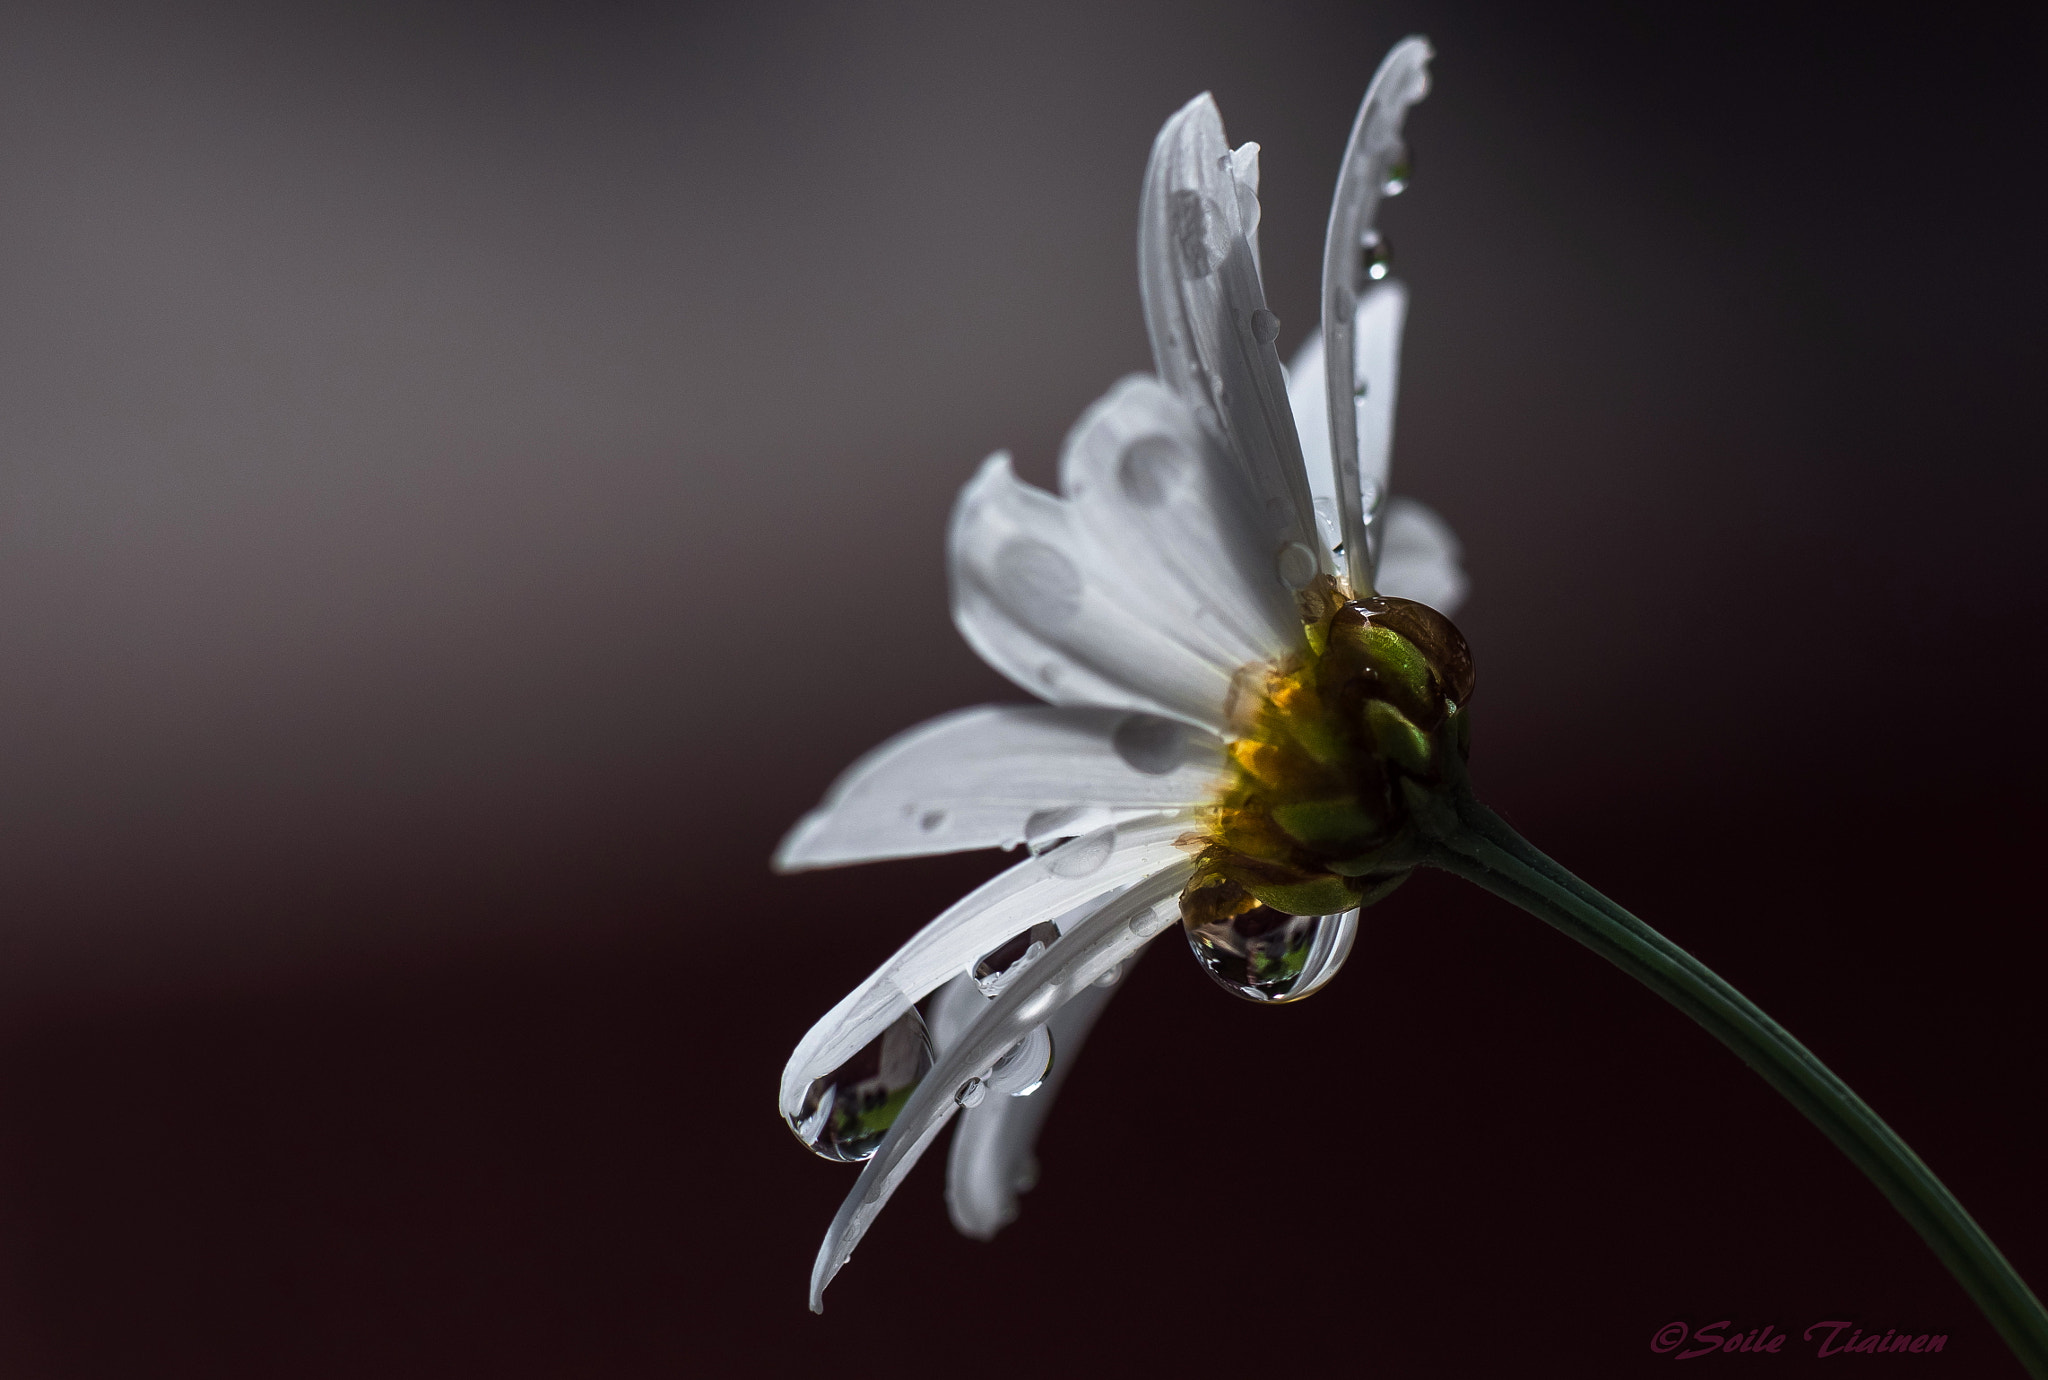 Photograph The Droplets by Sole Tiainen on 500px